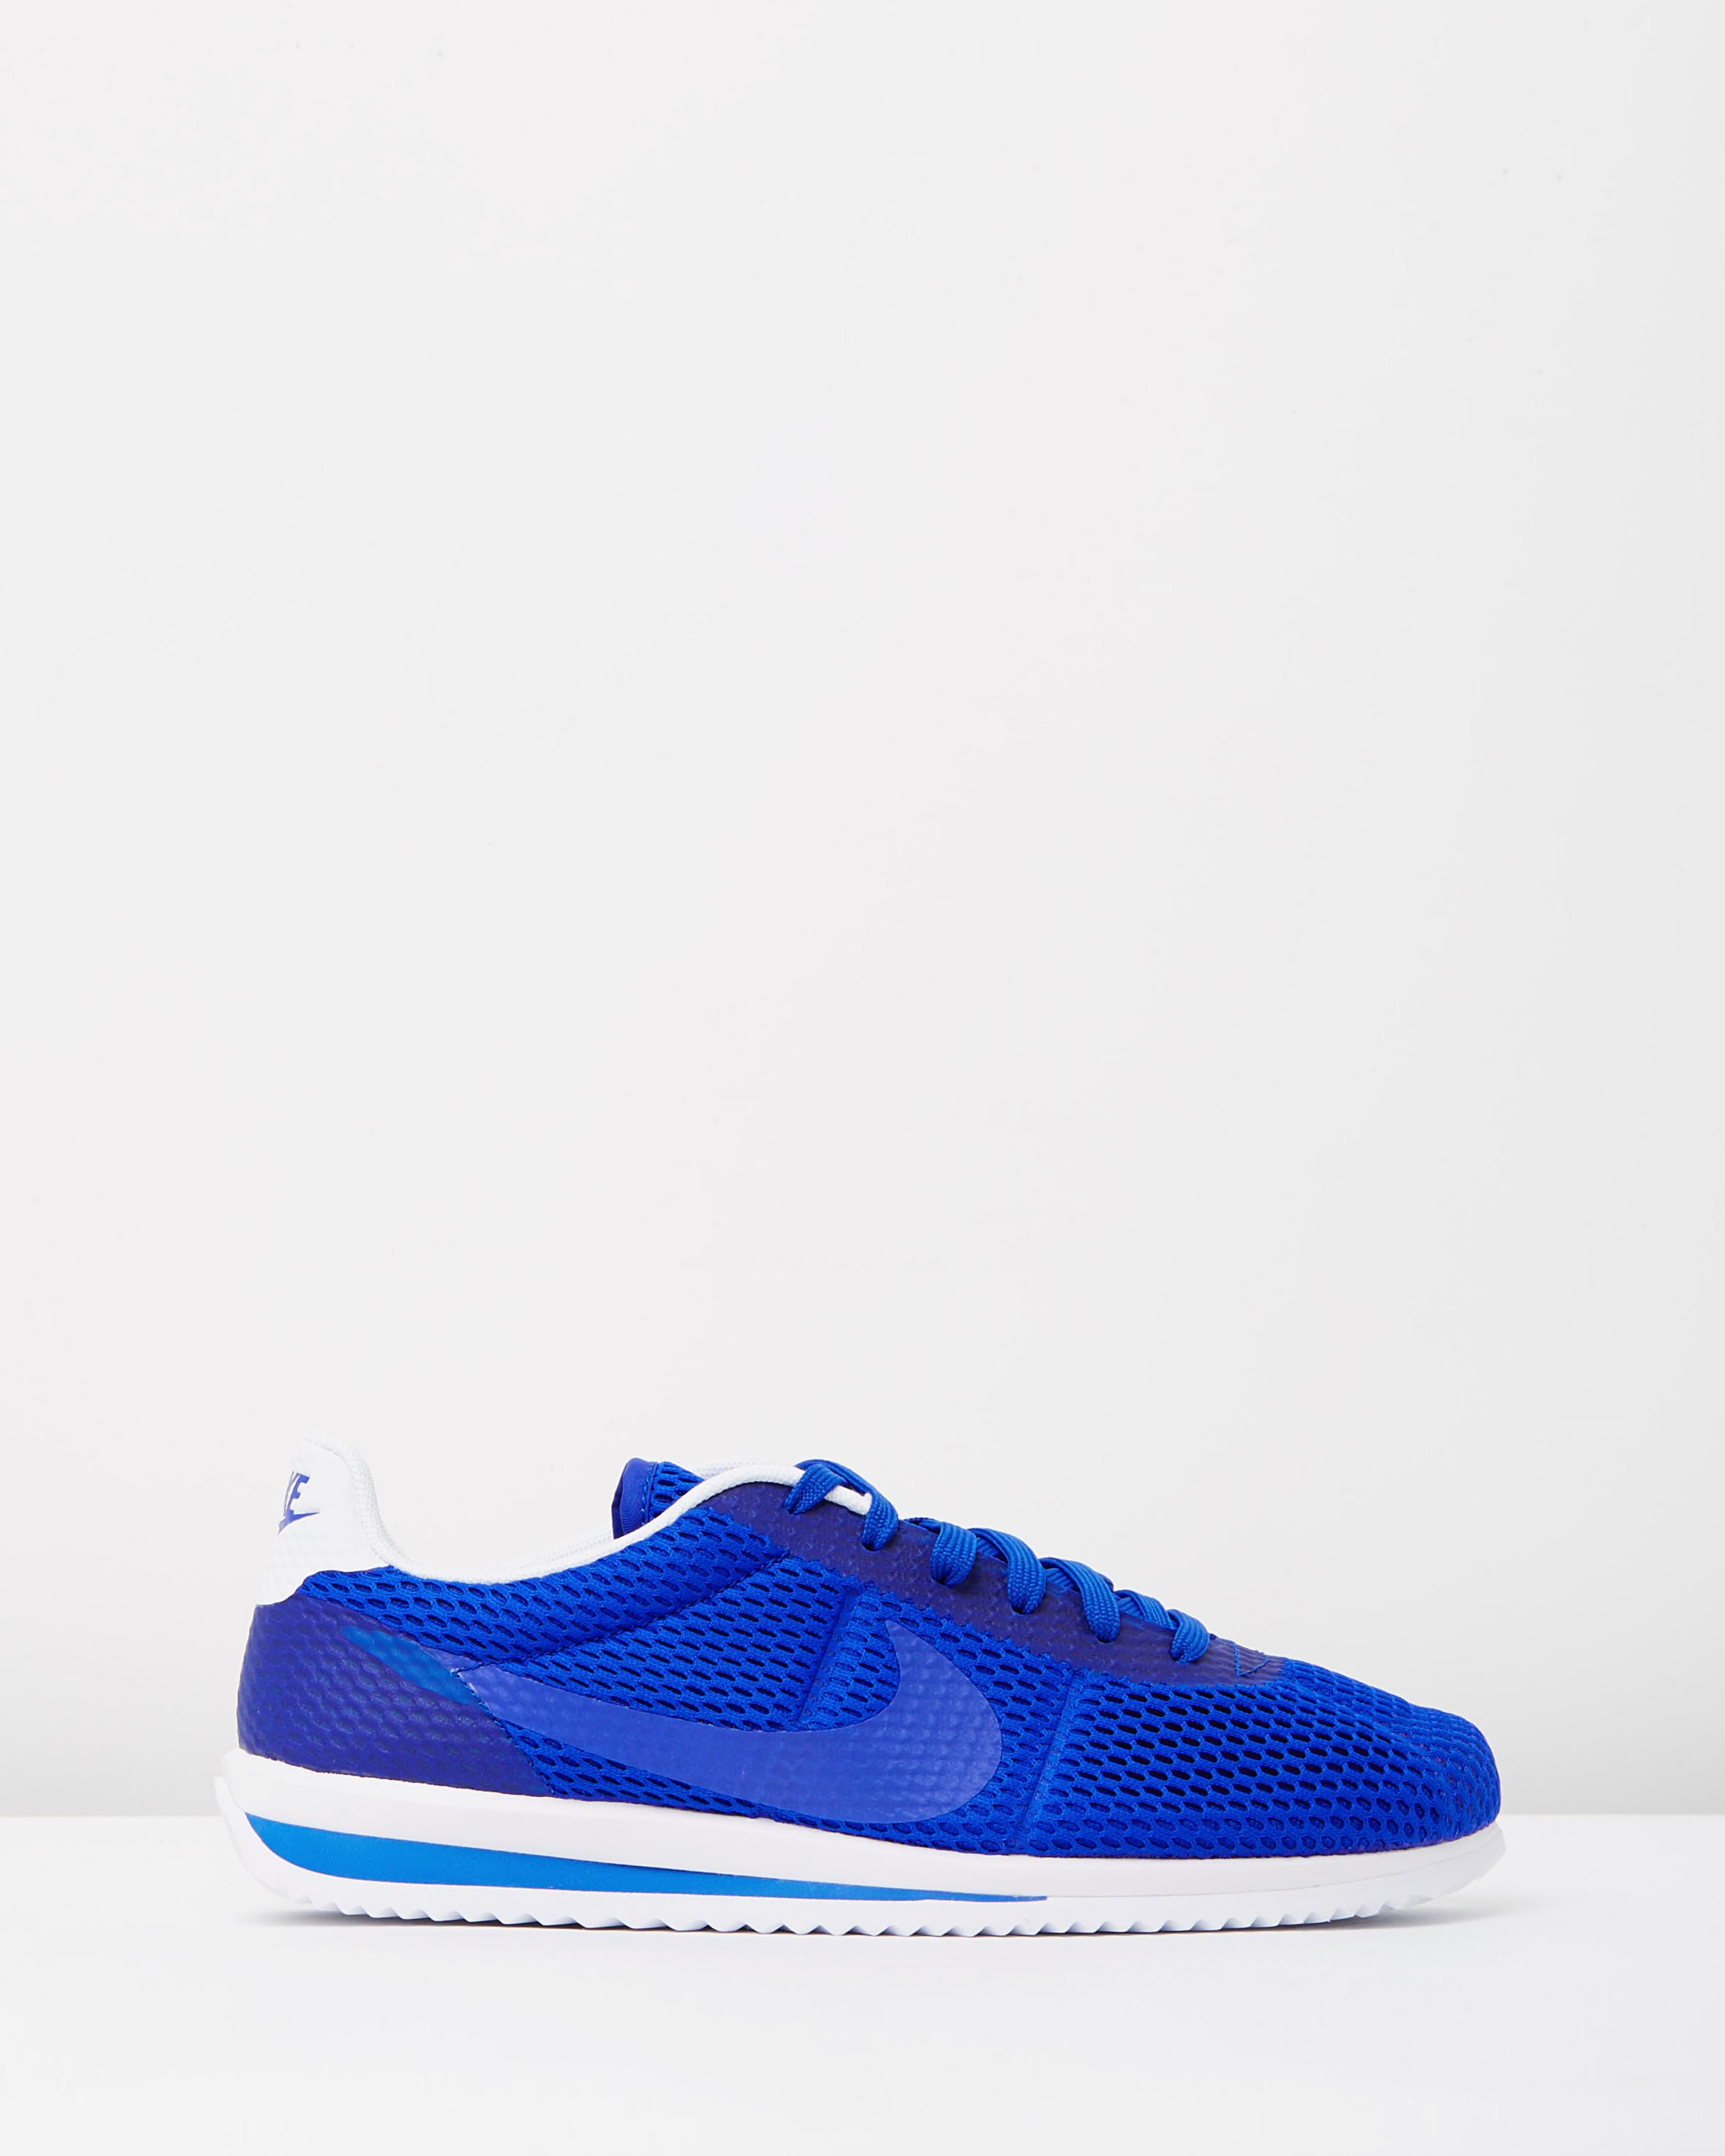 competitive price 4a286 bce3a Nike Cortez Ultra BR Total Blue & White